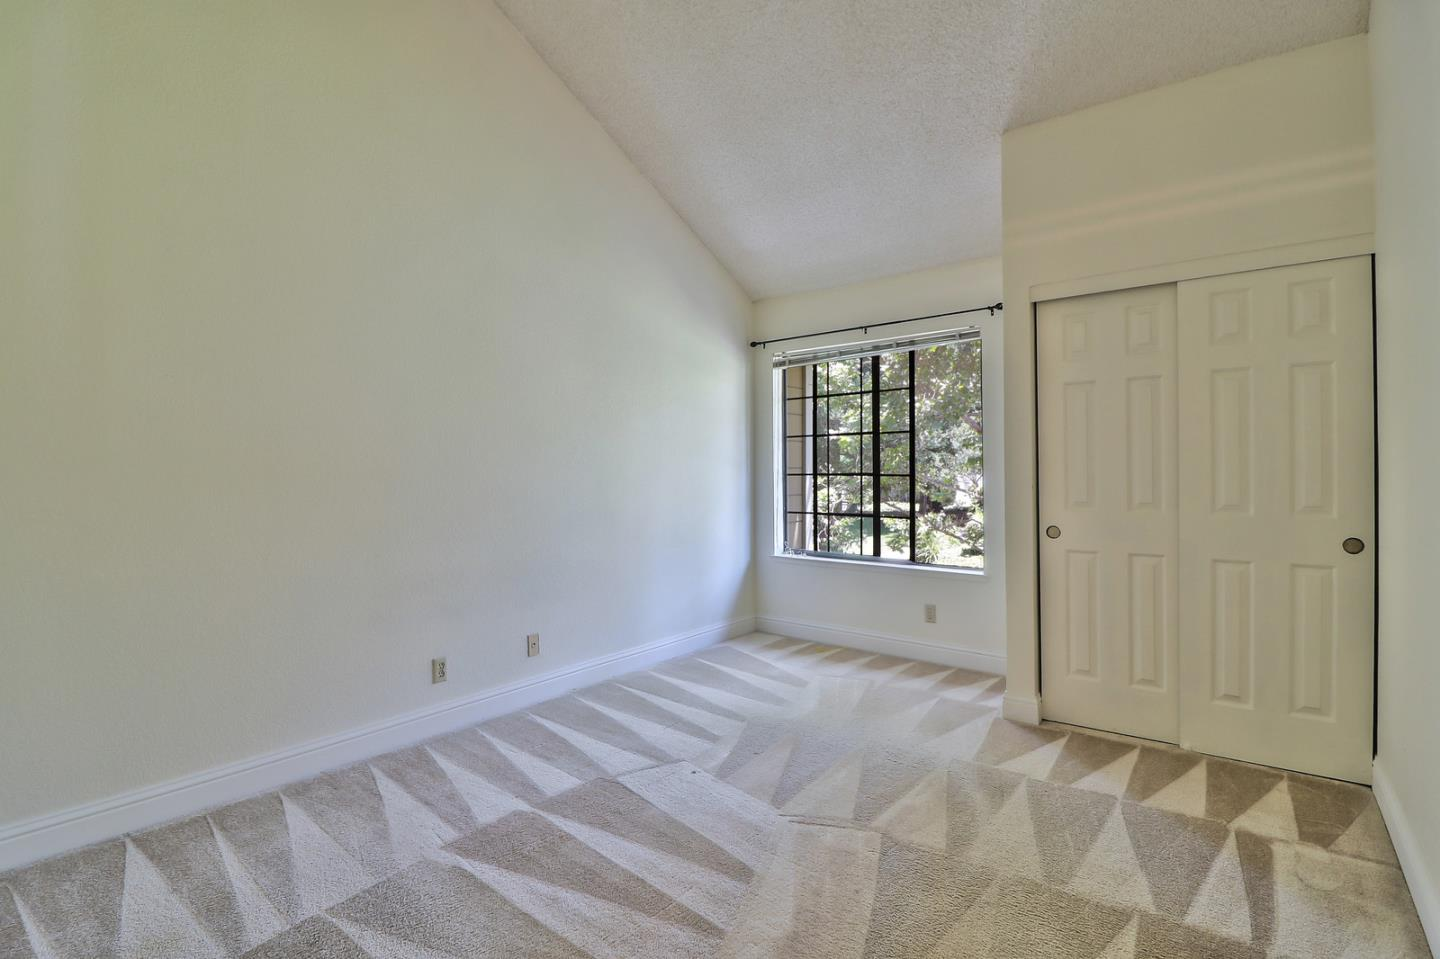 Additional photo for property listing at 2570 Yerba Bank Court  San Jose, California 95121 United States